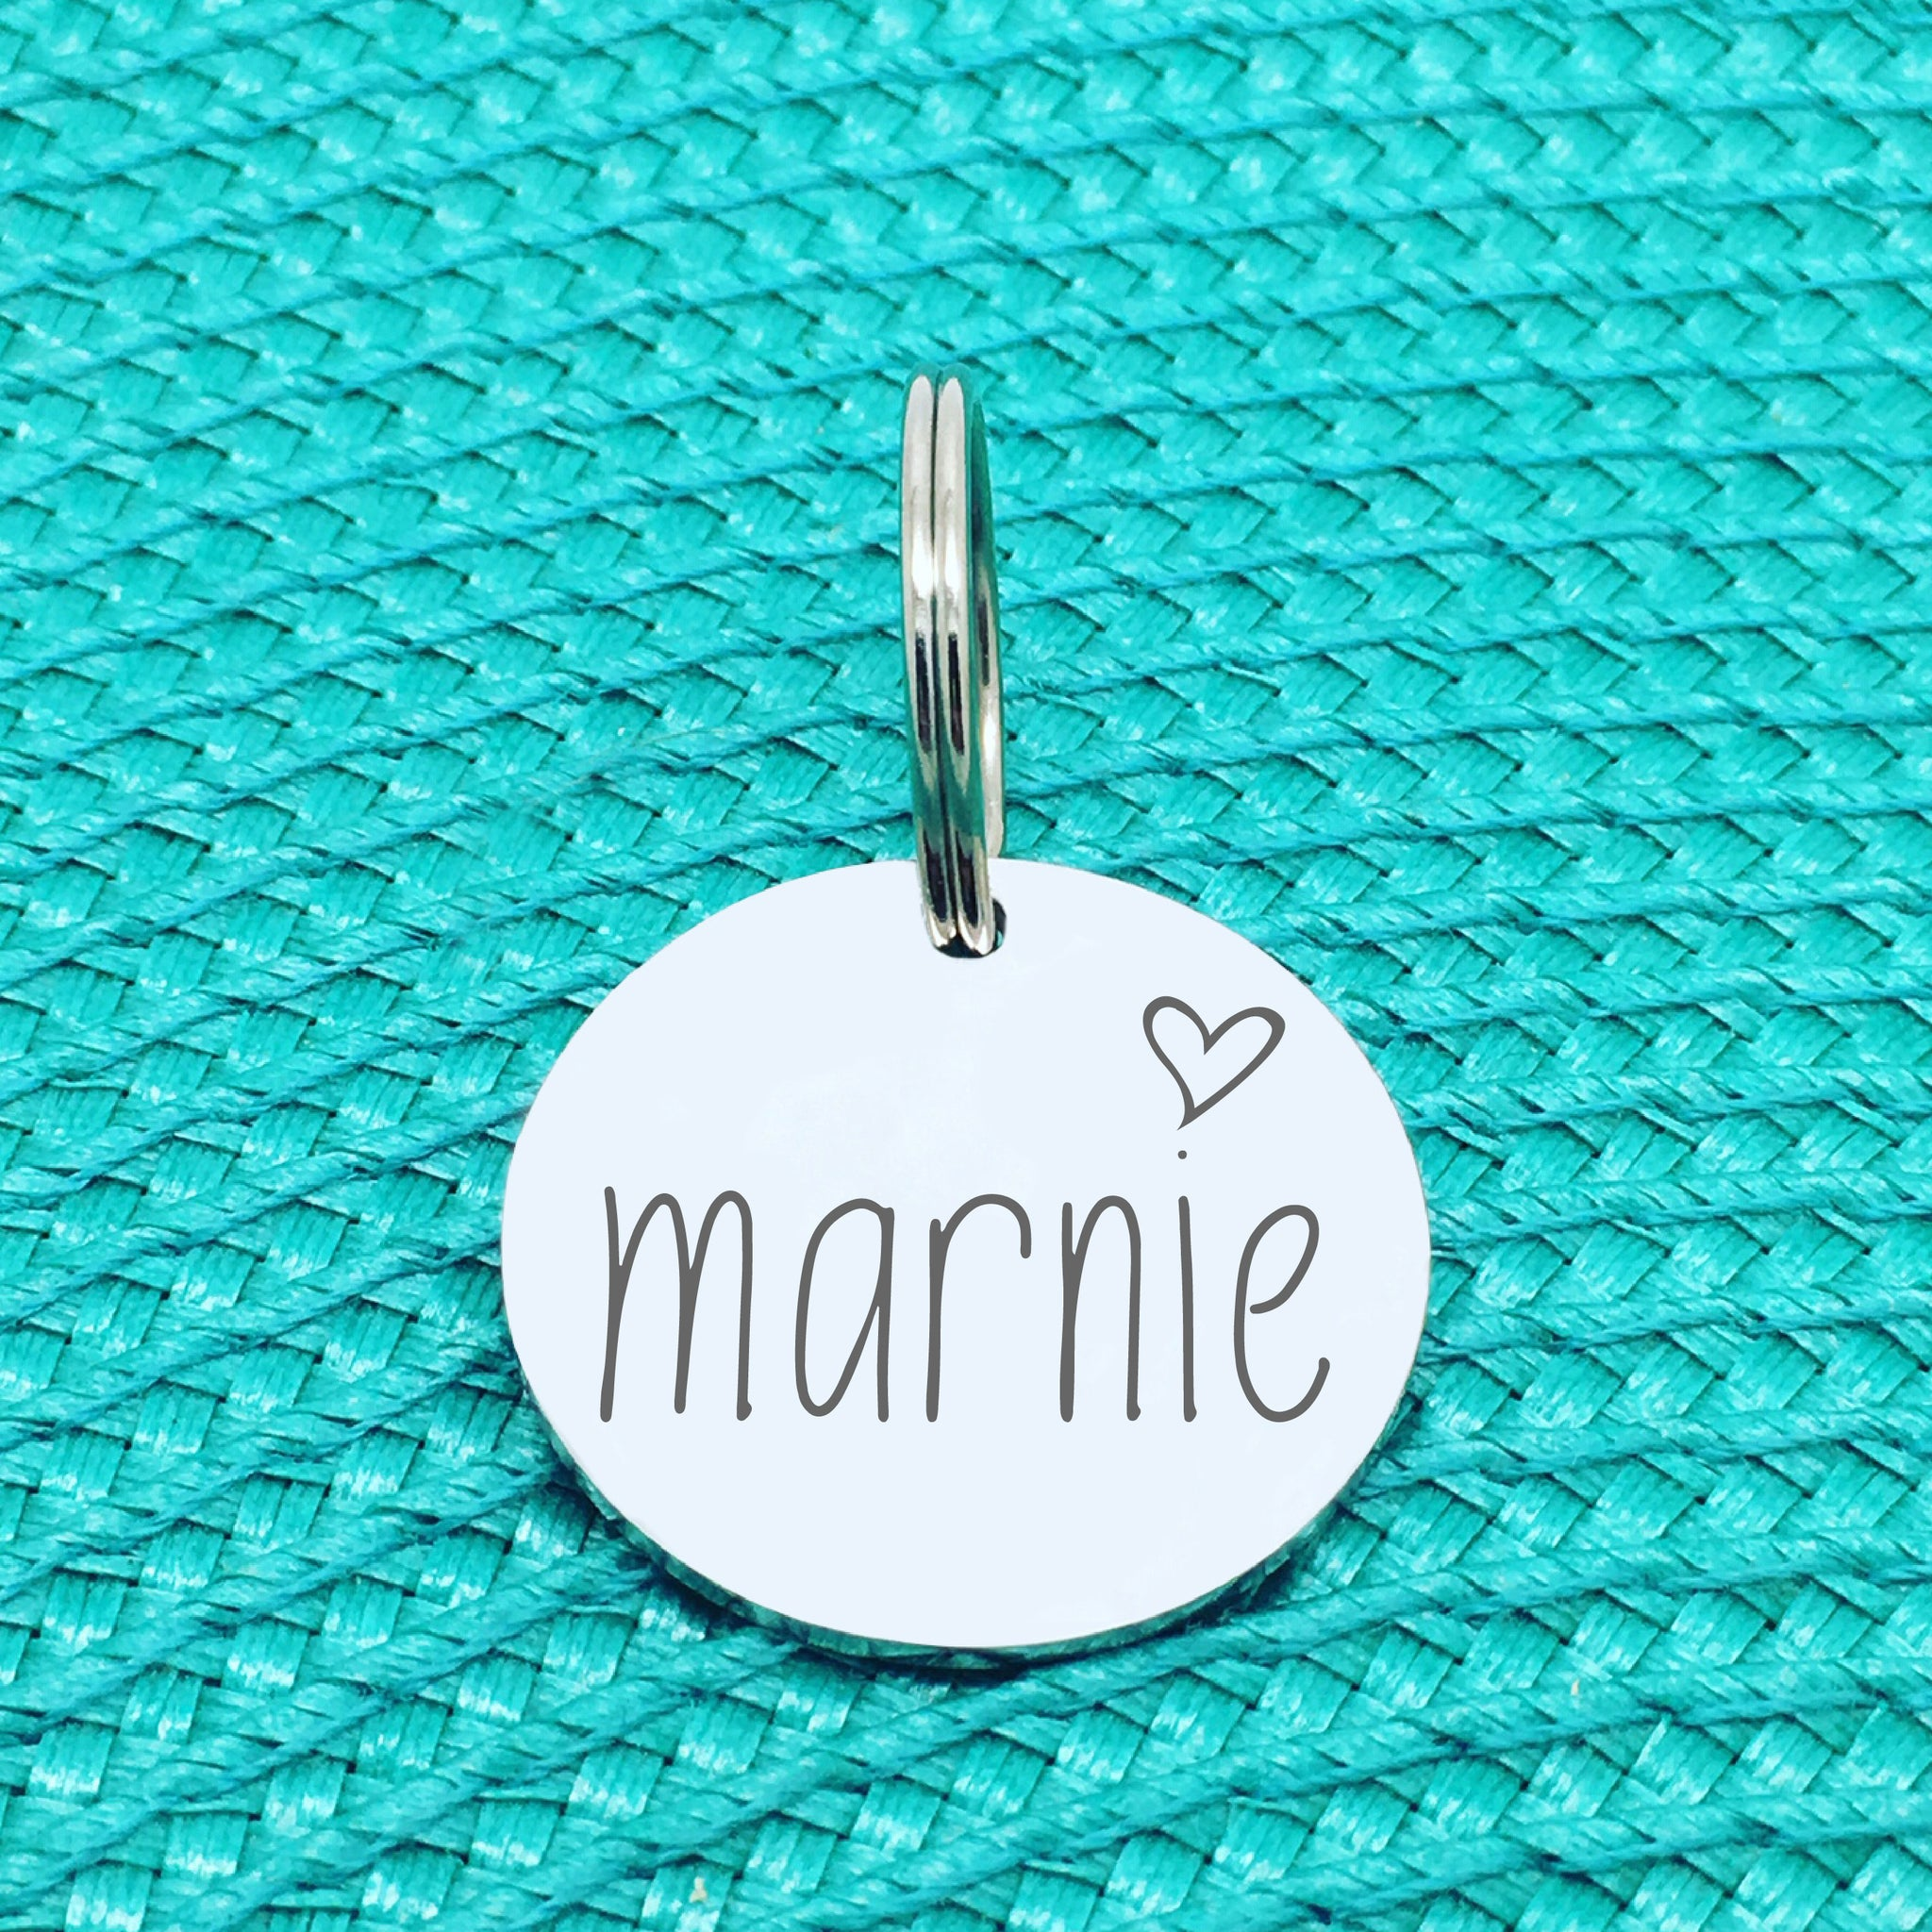 Engraved Personalised Pet Tag, 'Marnie' Heart Design (Personalised Custom Engraved Dog Tag)